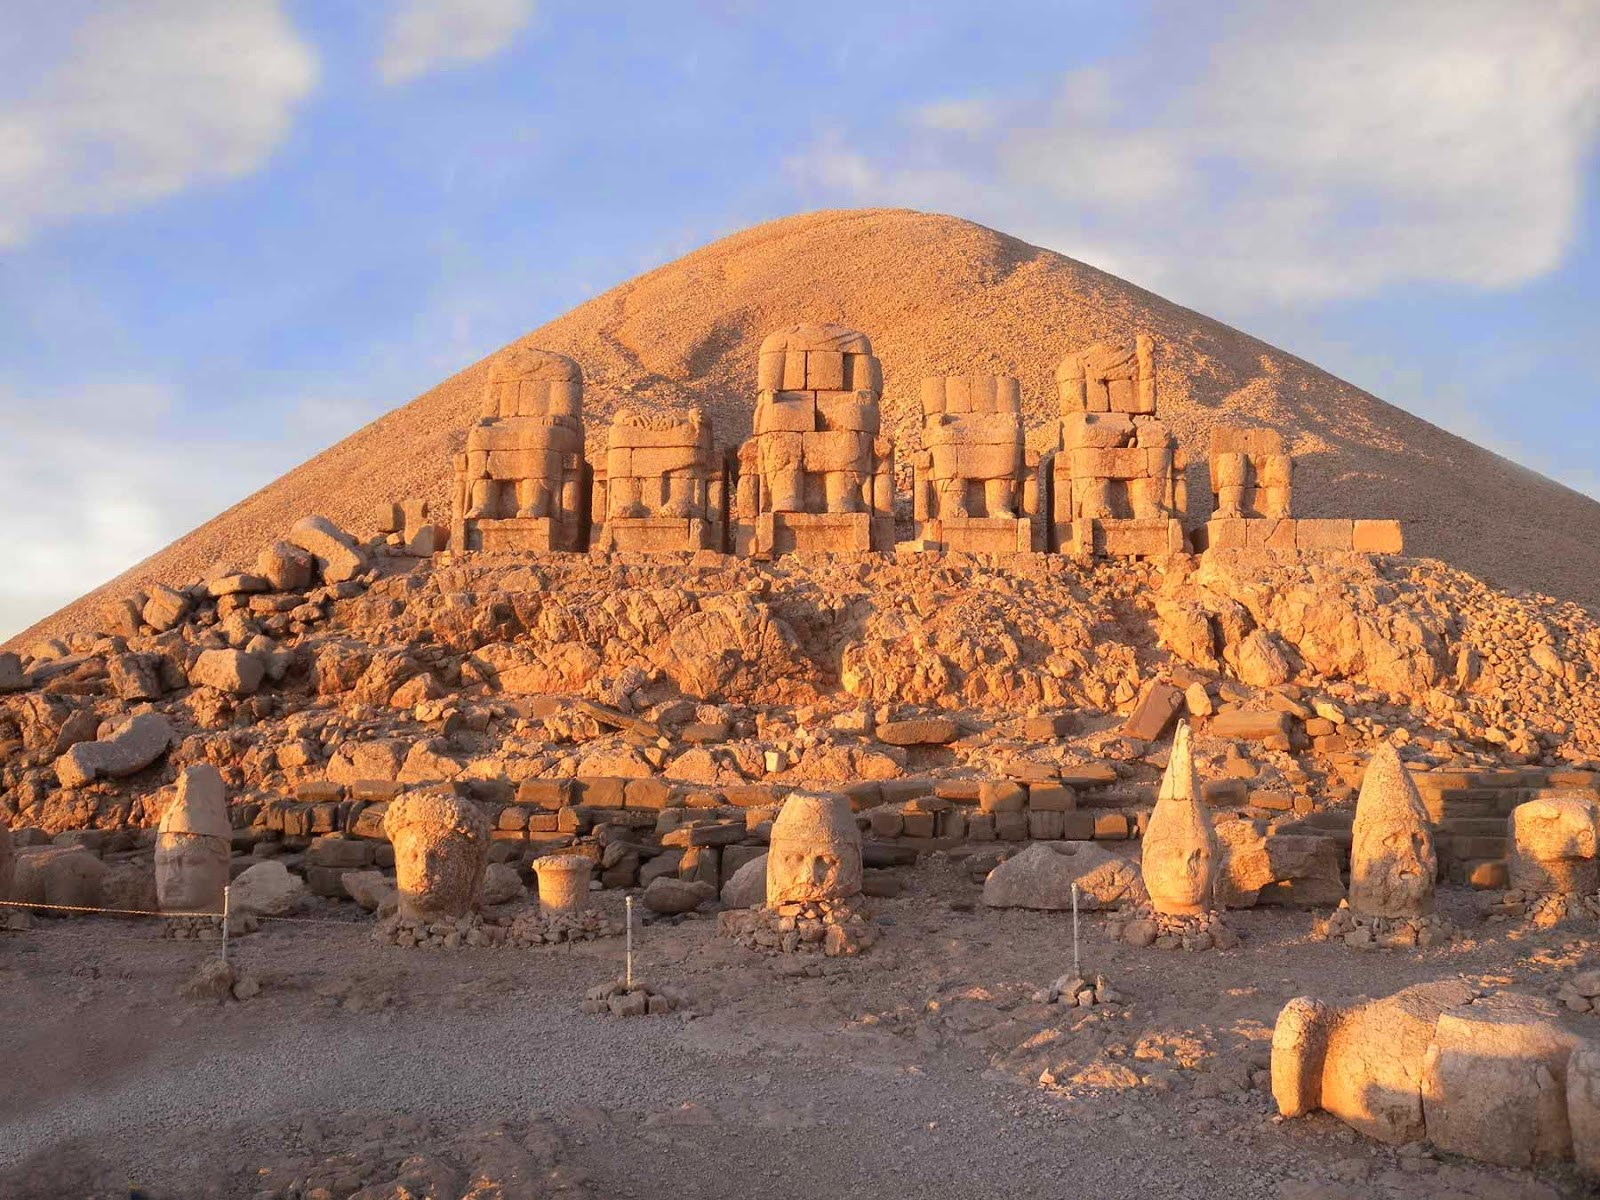 Tumulus and stonehead statues at the Mount Nemrut